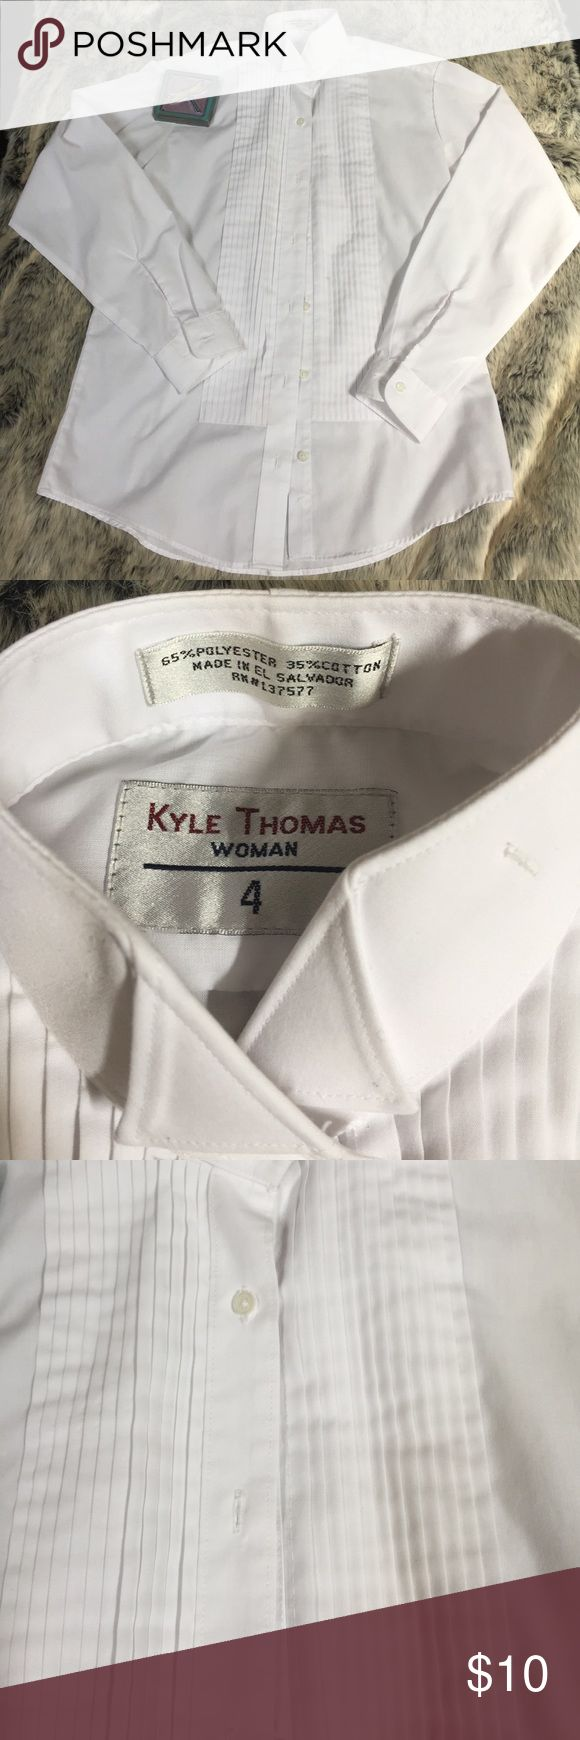 Tux shirt Gently loved white tux shirt.  Size 4 woman or XS!  Great condition! Kyle Thomas Tops Button Down Shirts